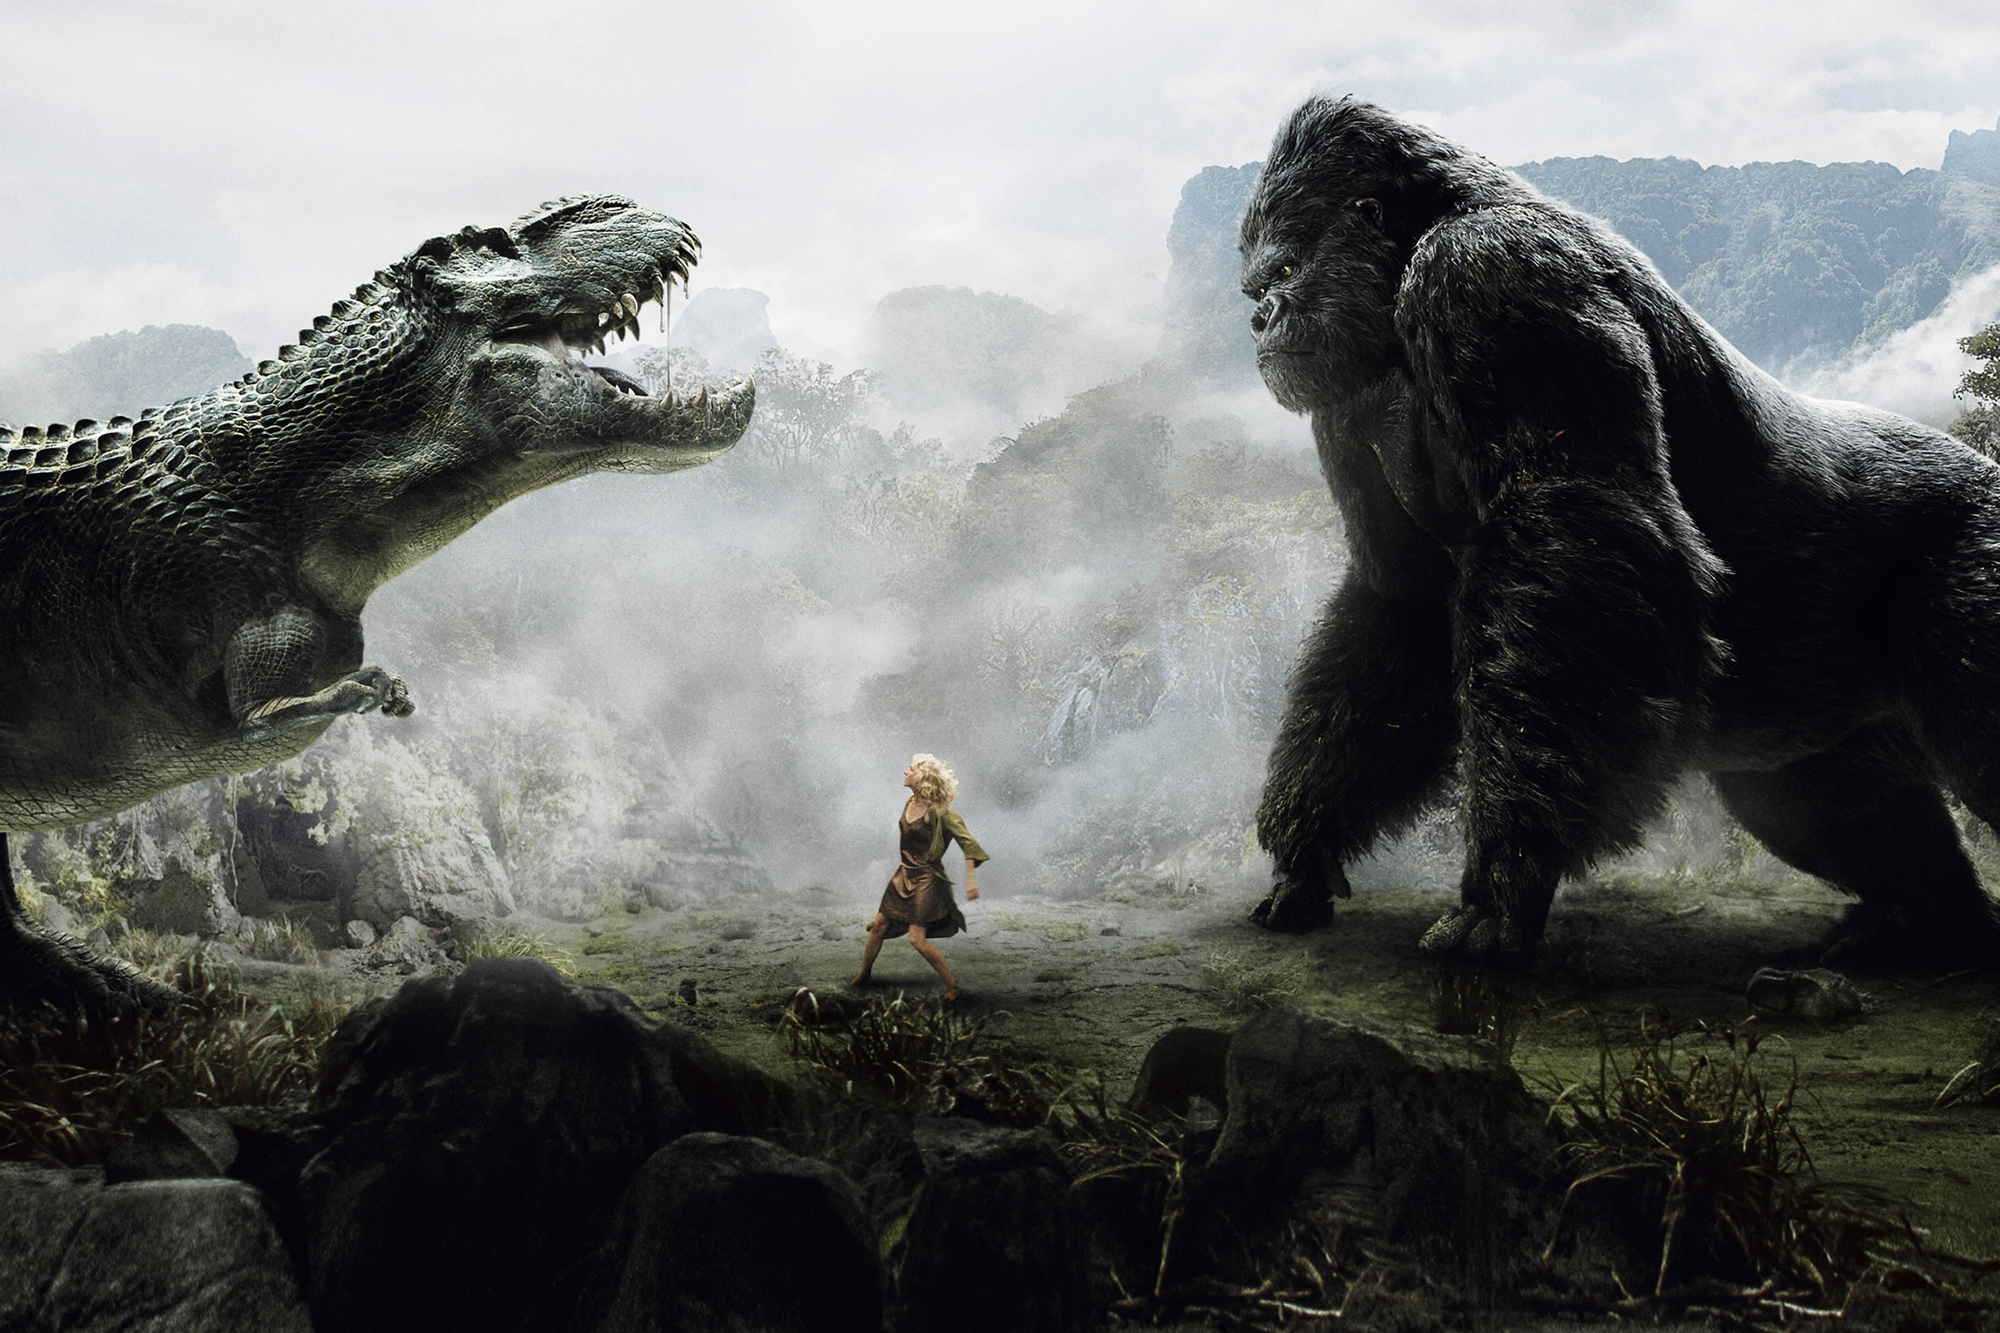 King Kong, 2005: Peter Jackson's 24-ft. ape relied heavily on motion capture with a healthy dose of CG animation. Actor Andy Serkis traveled to Rwanda to study the behavior of gorillas, then performed Kong's scenes in a special suit with dozens of optical markers—132 alone on his face—that recorded his gestures and expressions.